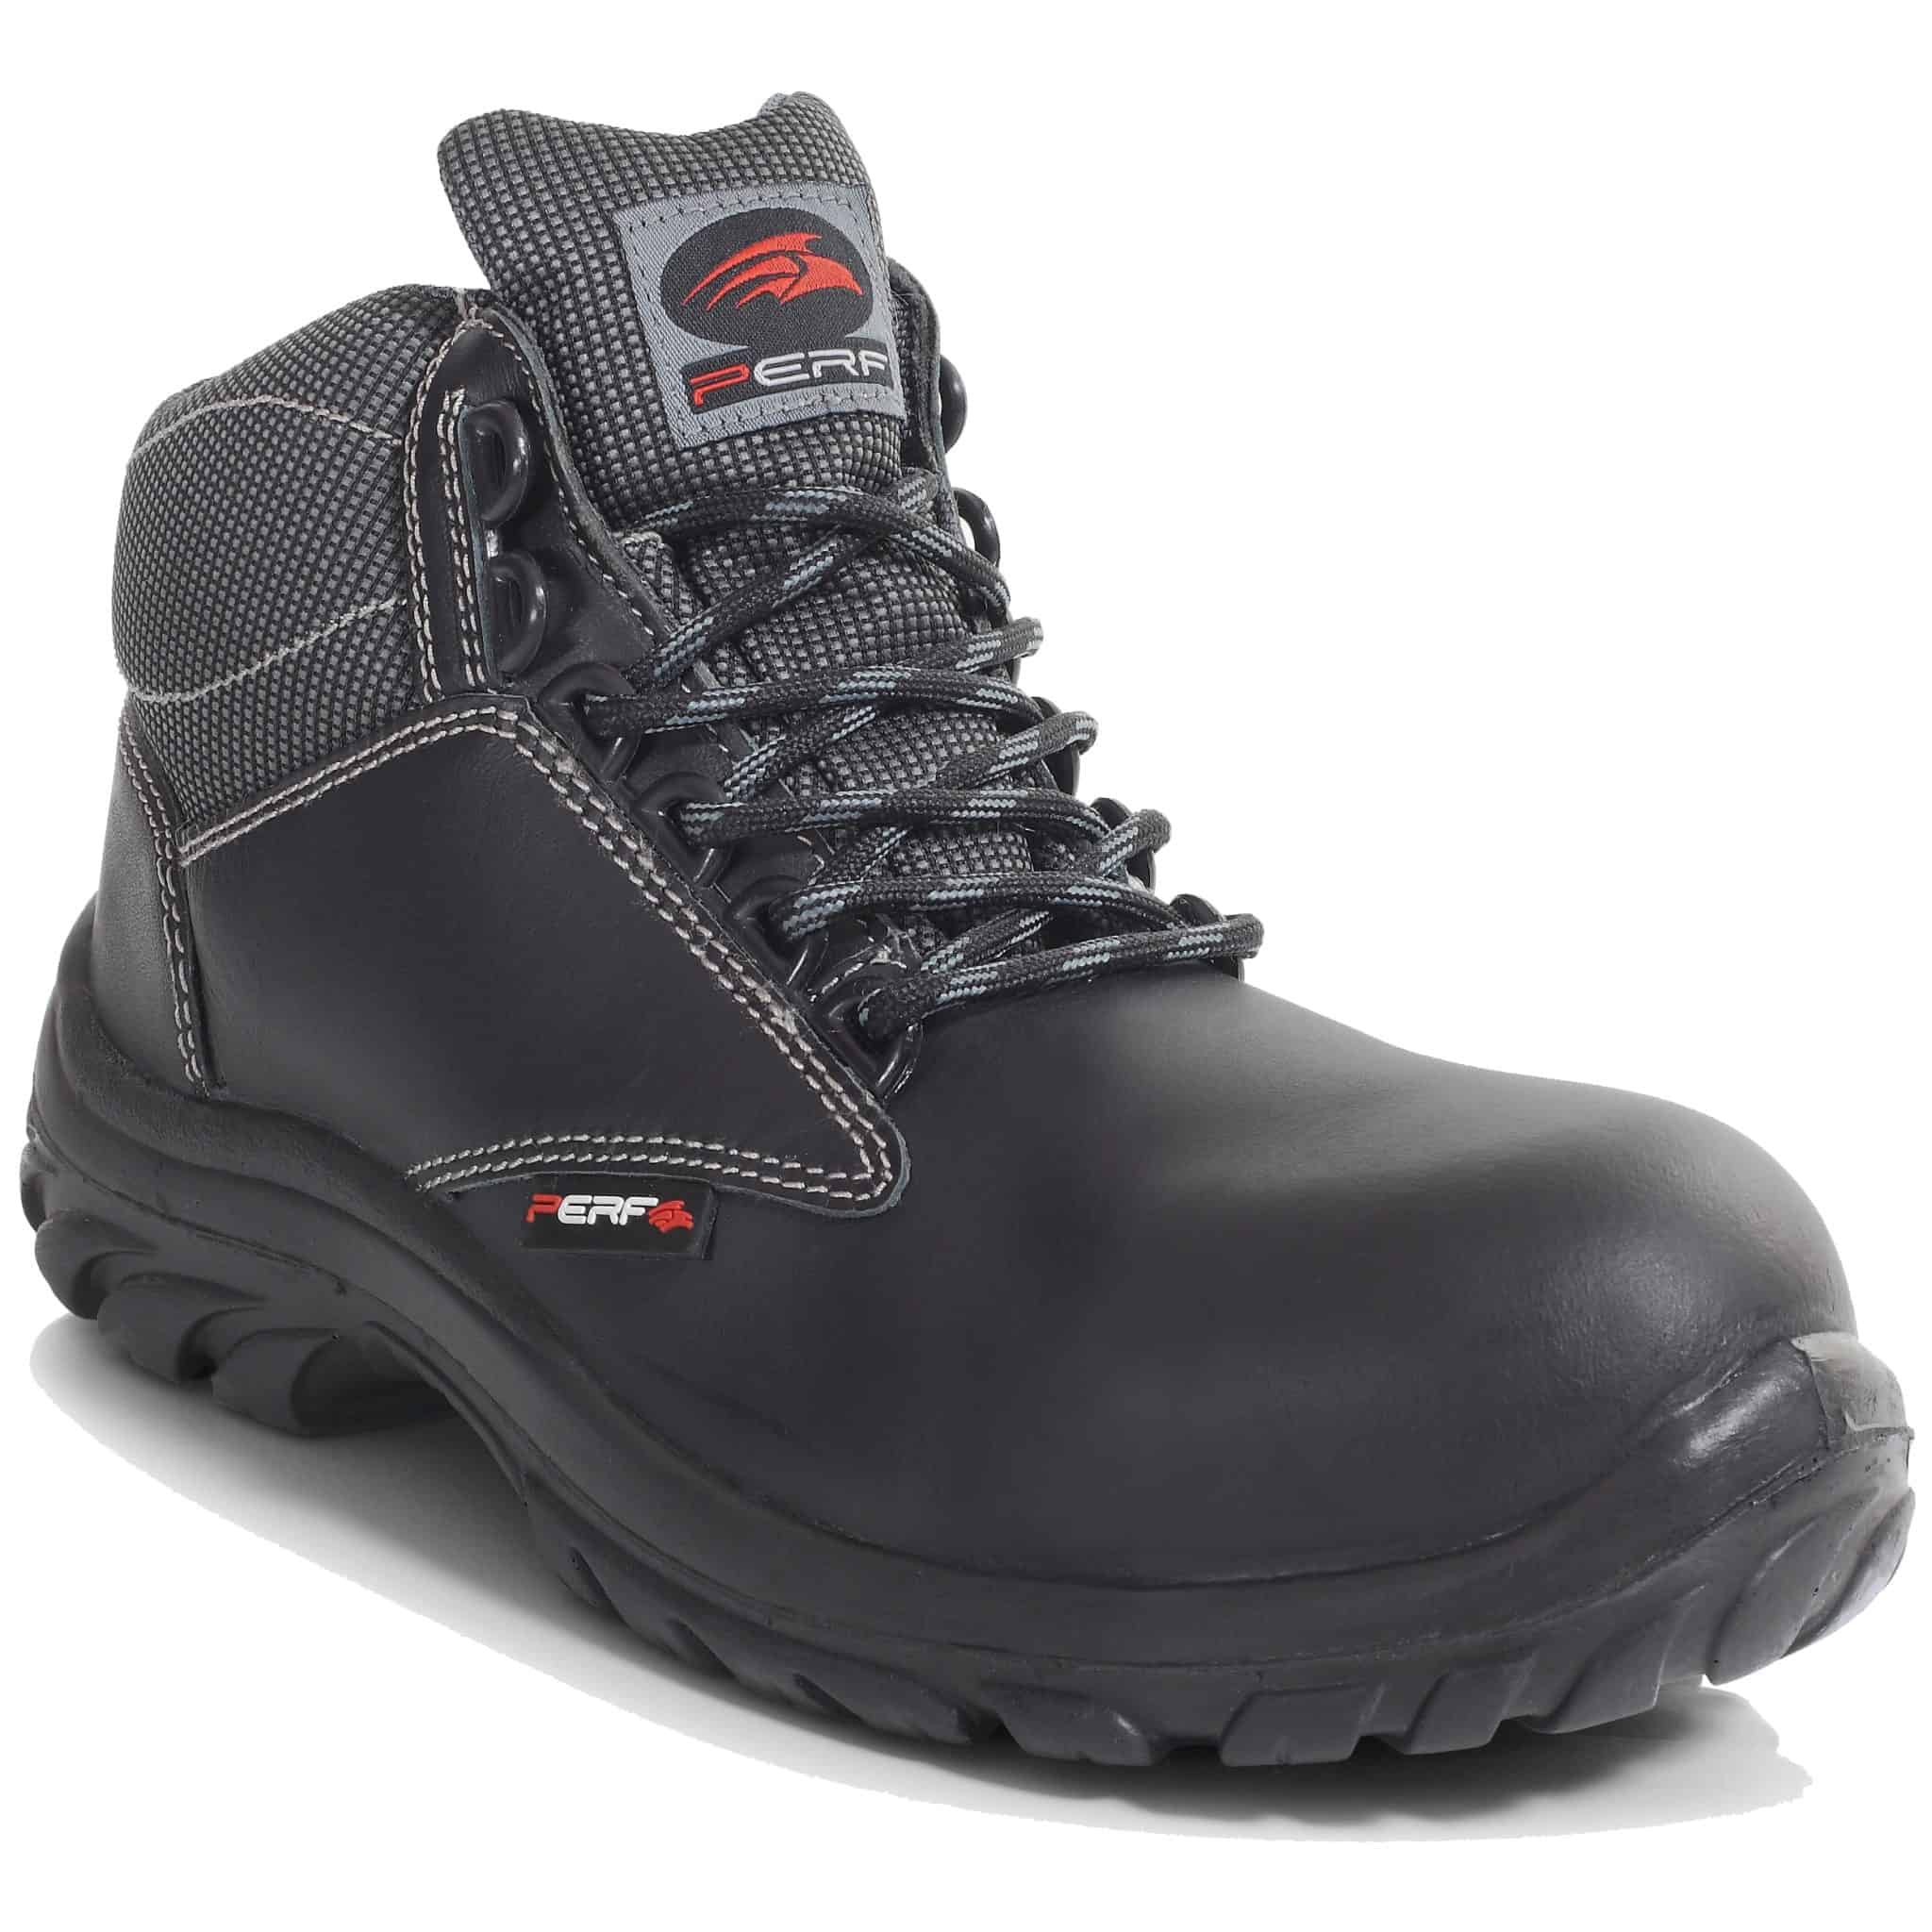 PB110-BLGY – Lightweight Non-Metal S3 SRC PU Safety Hiker Boots